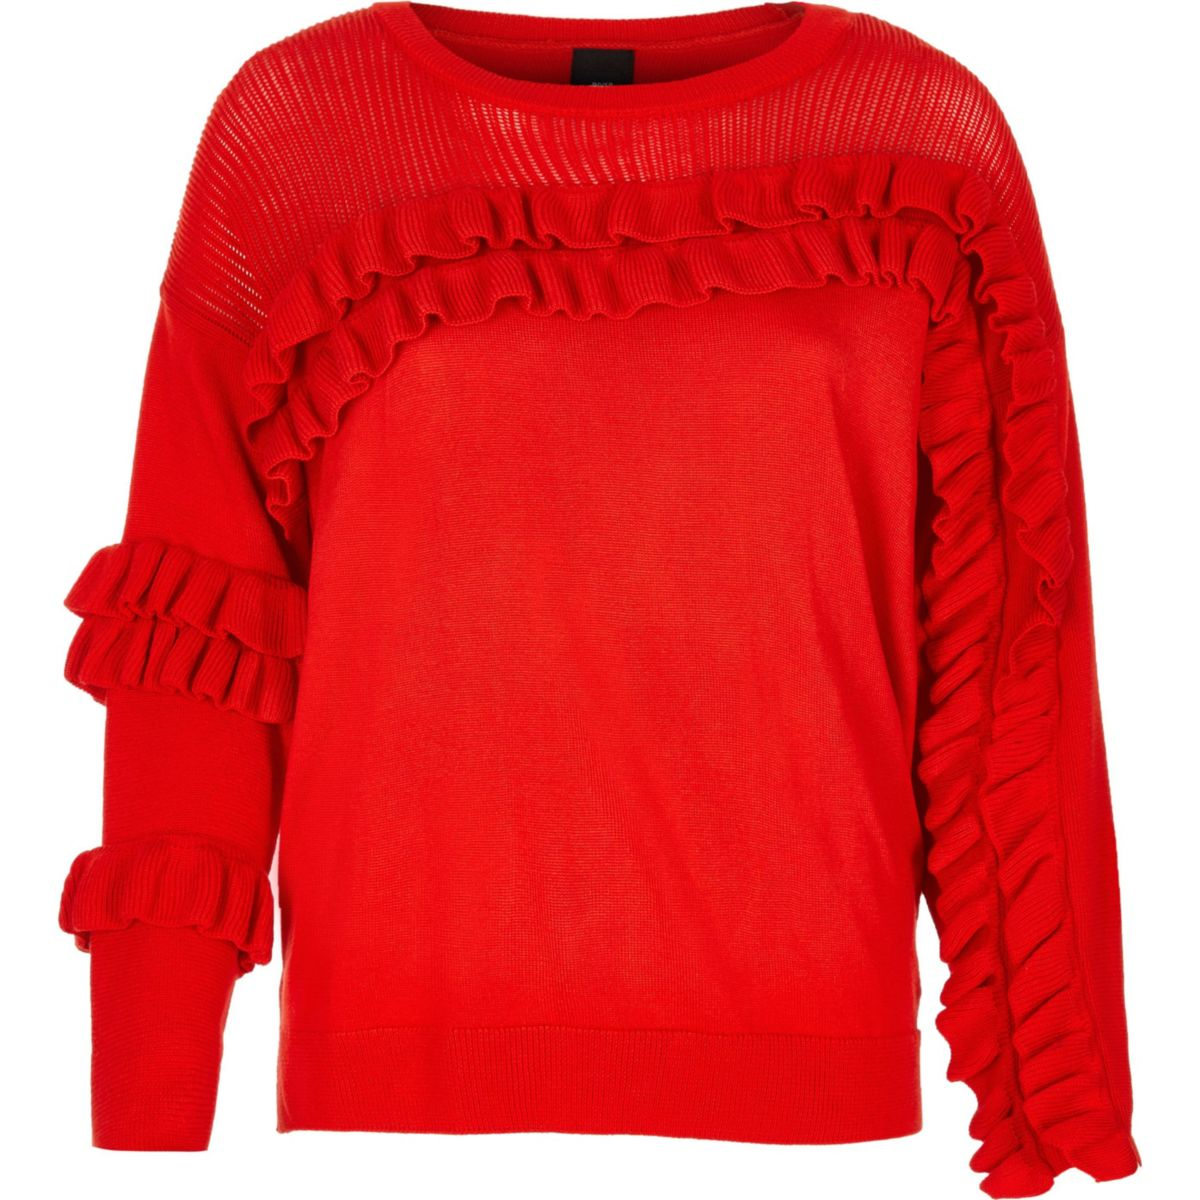 Red knit frill front sweater